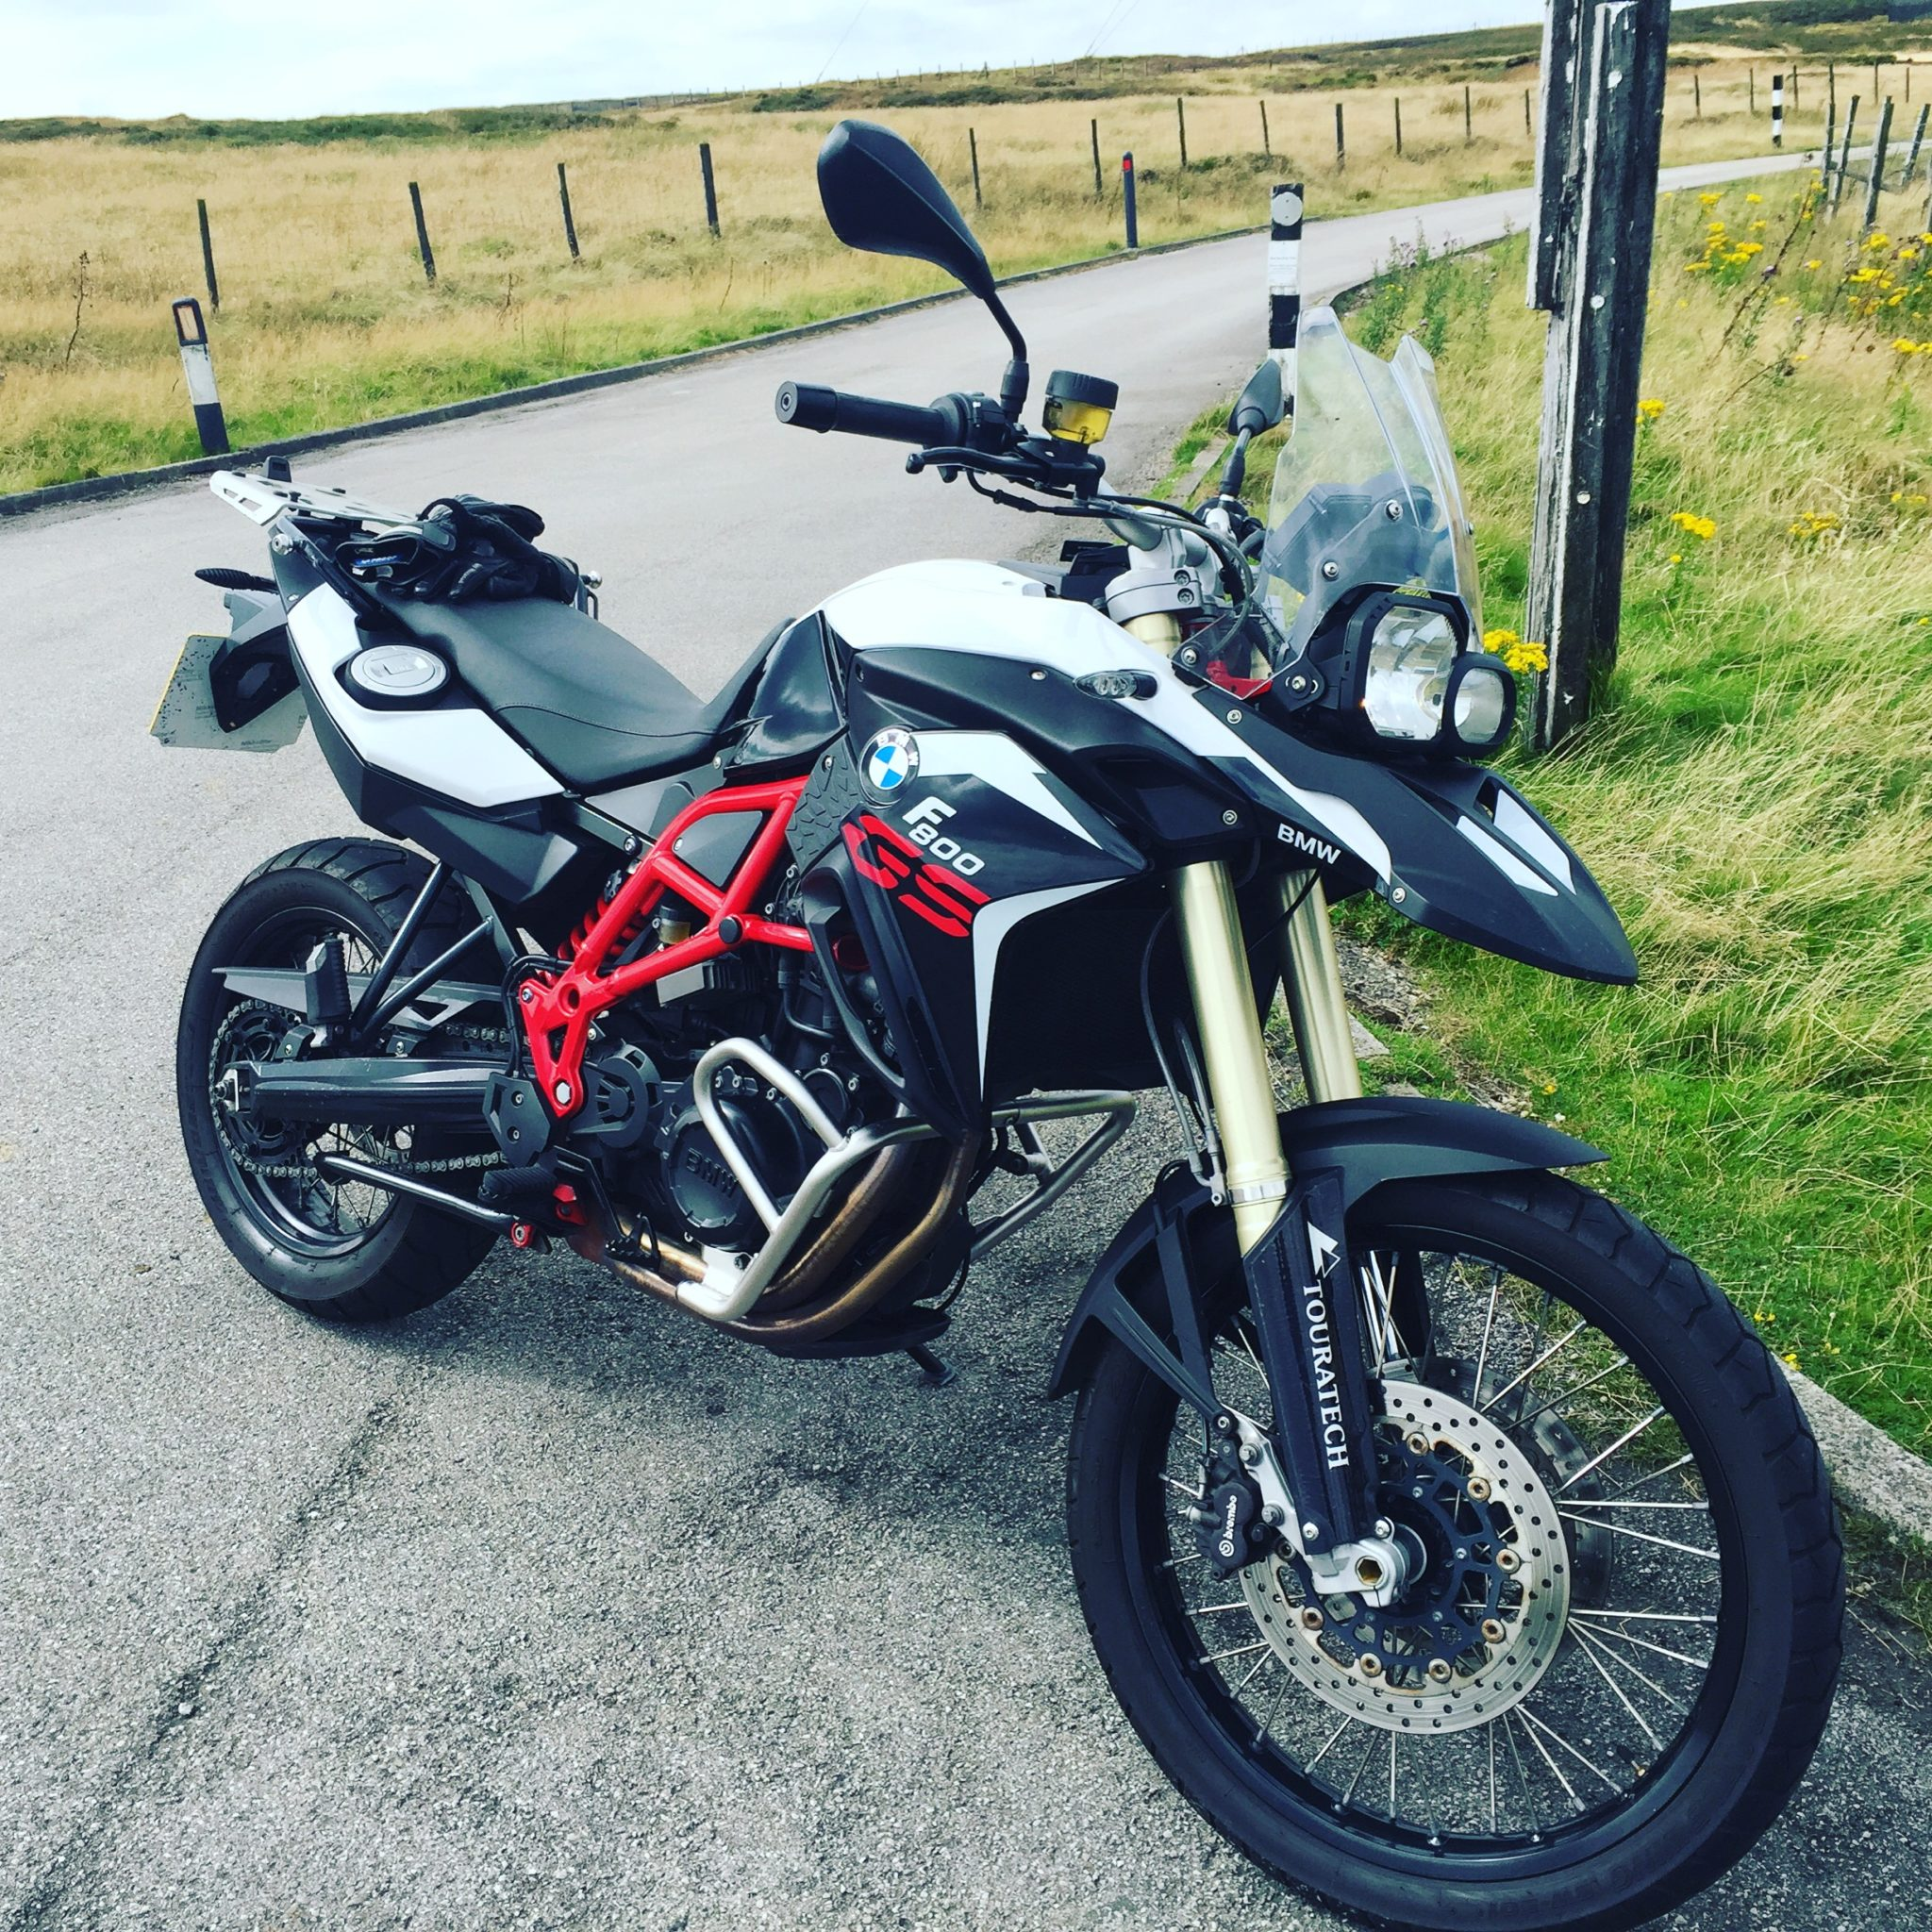 James – BMW F800GS